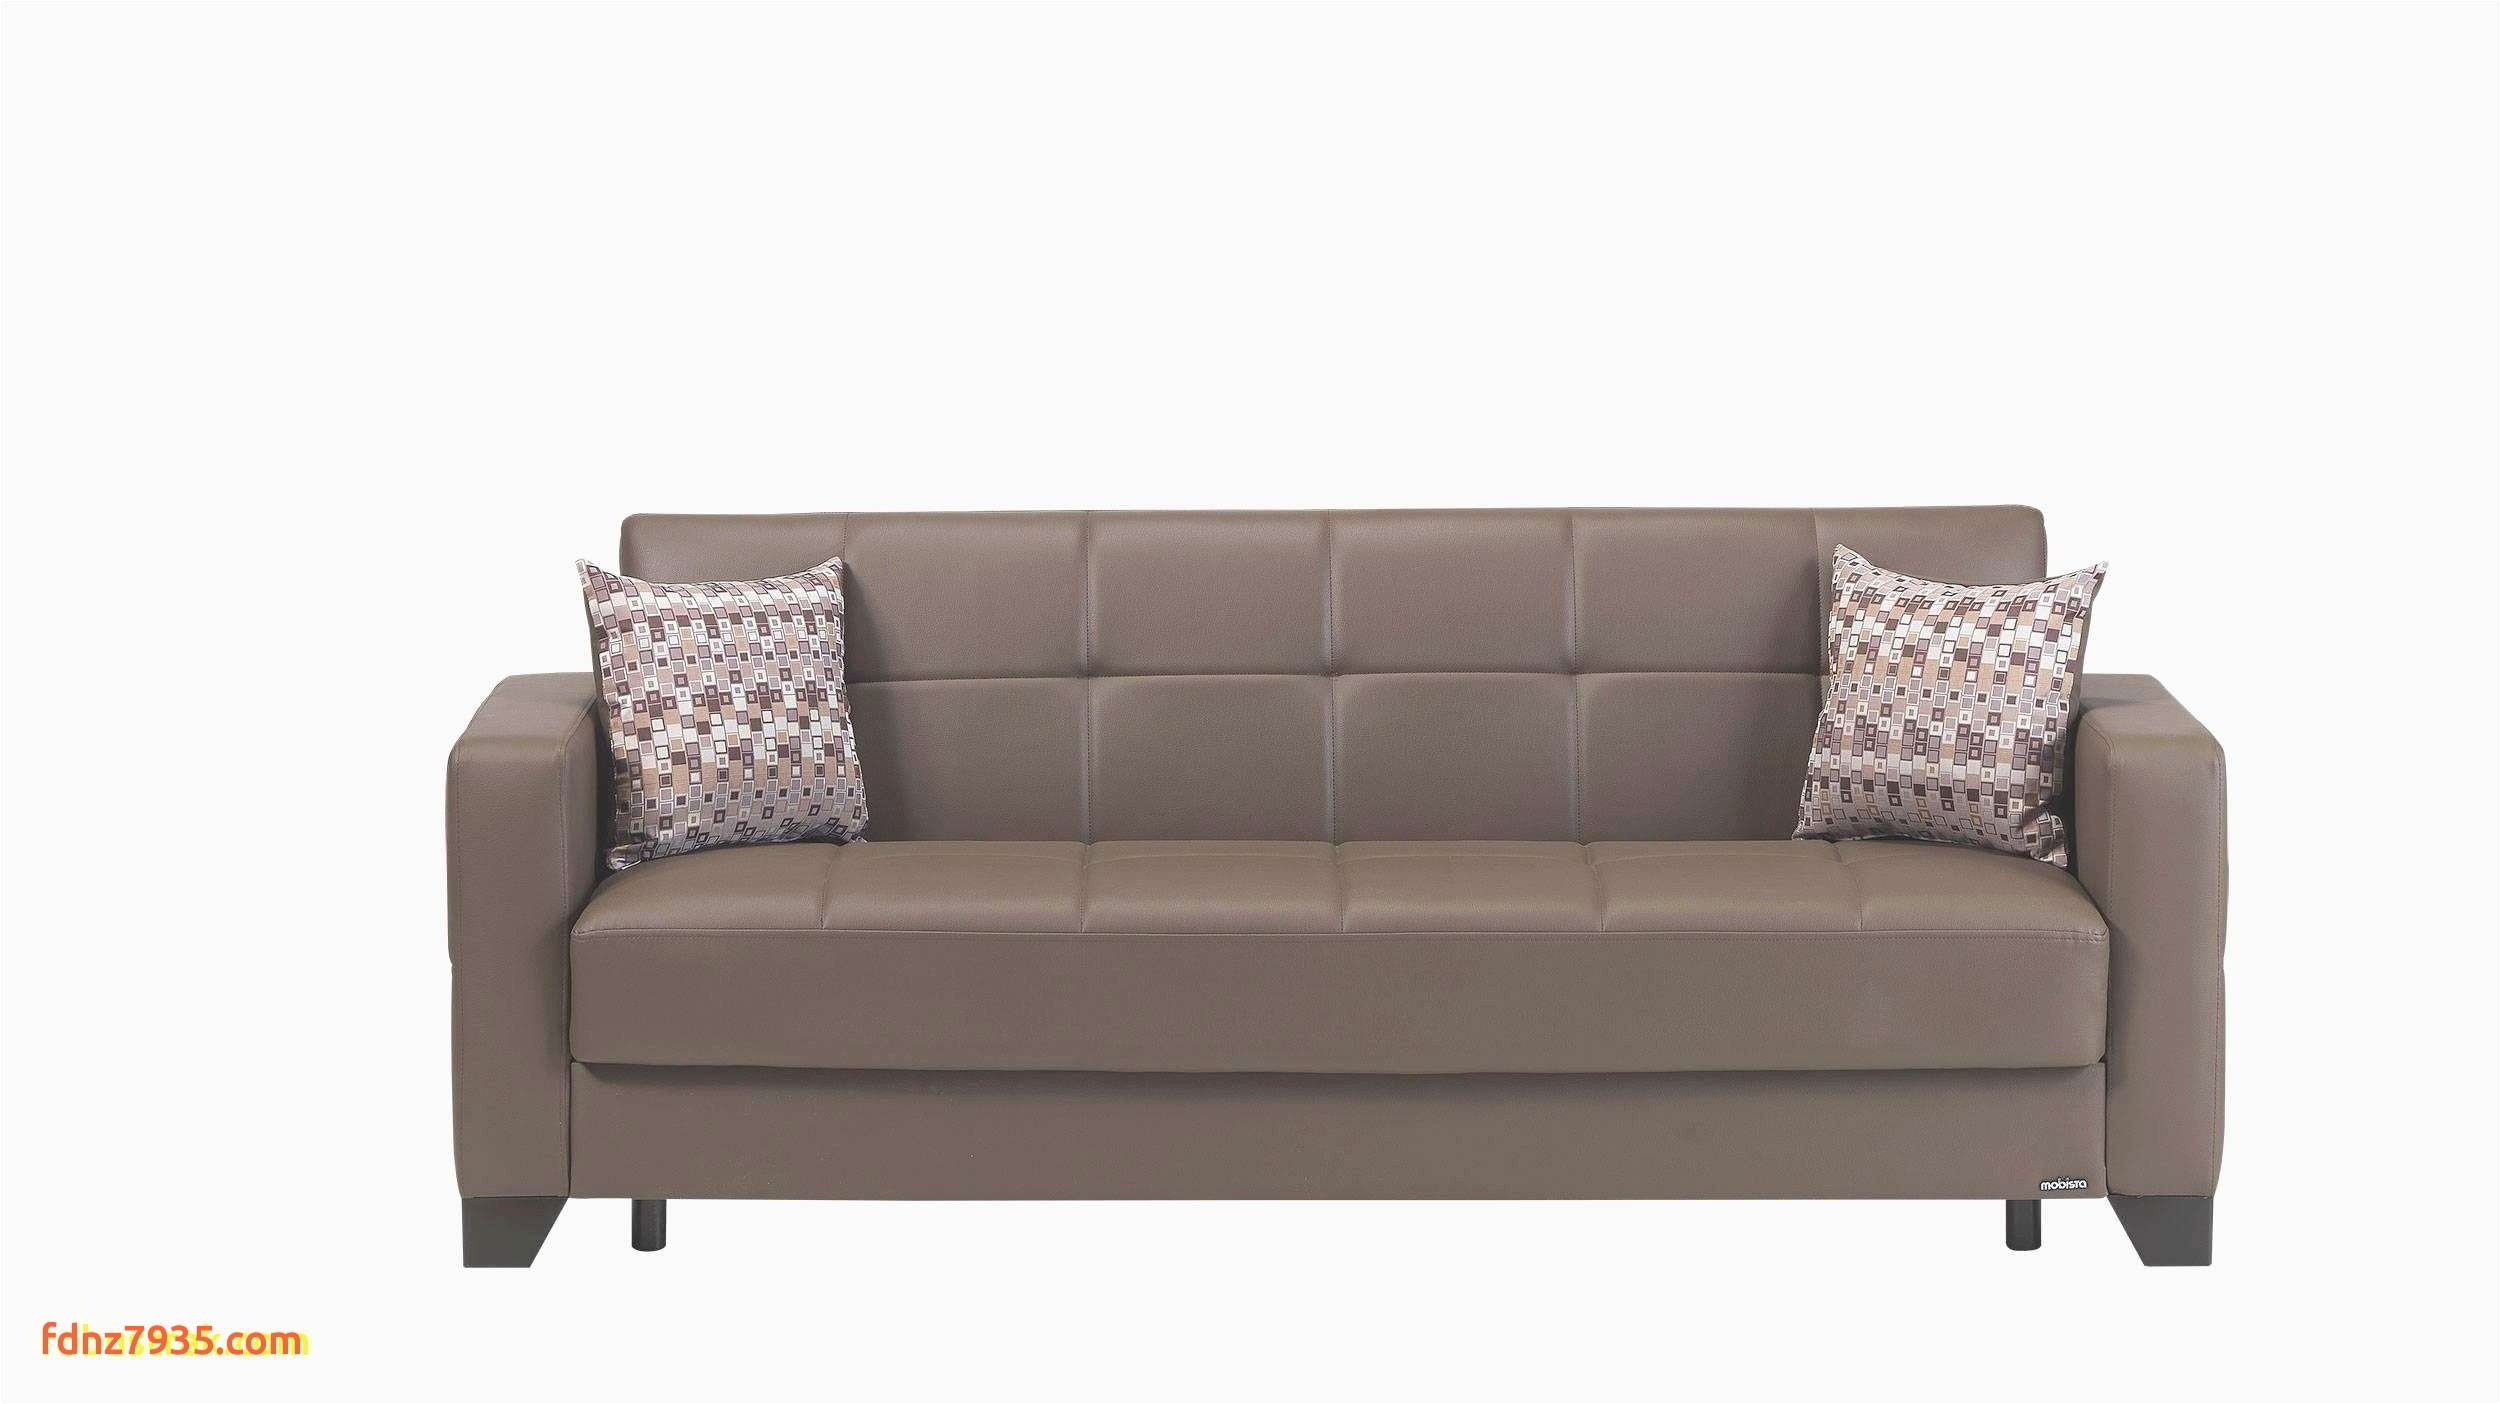 outdoor furniture cover beautiful covers for pets fresh sectional couch cover new sectional couch 0d